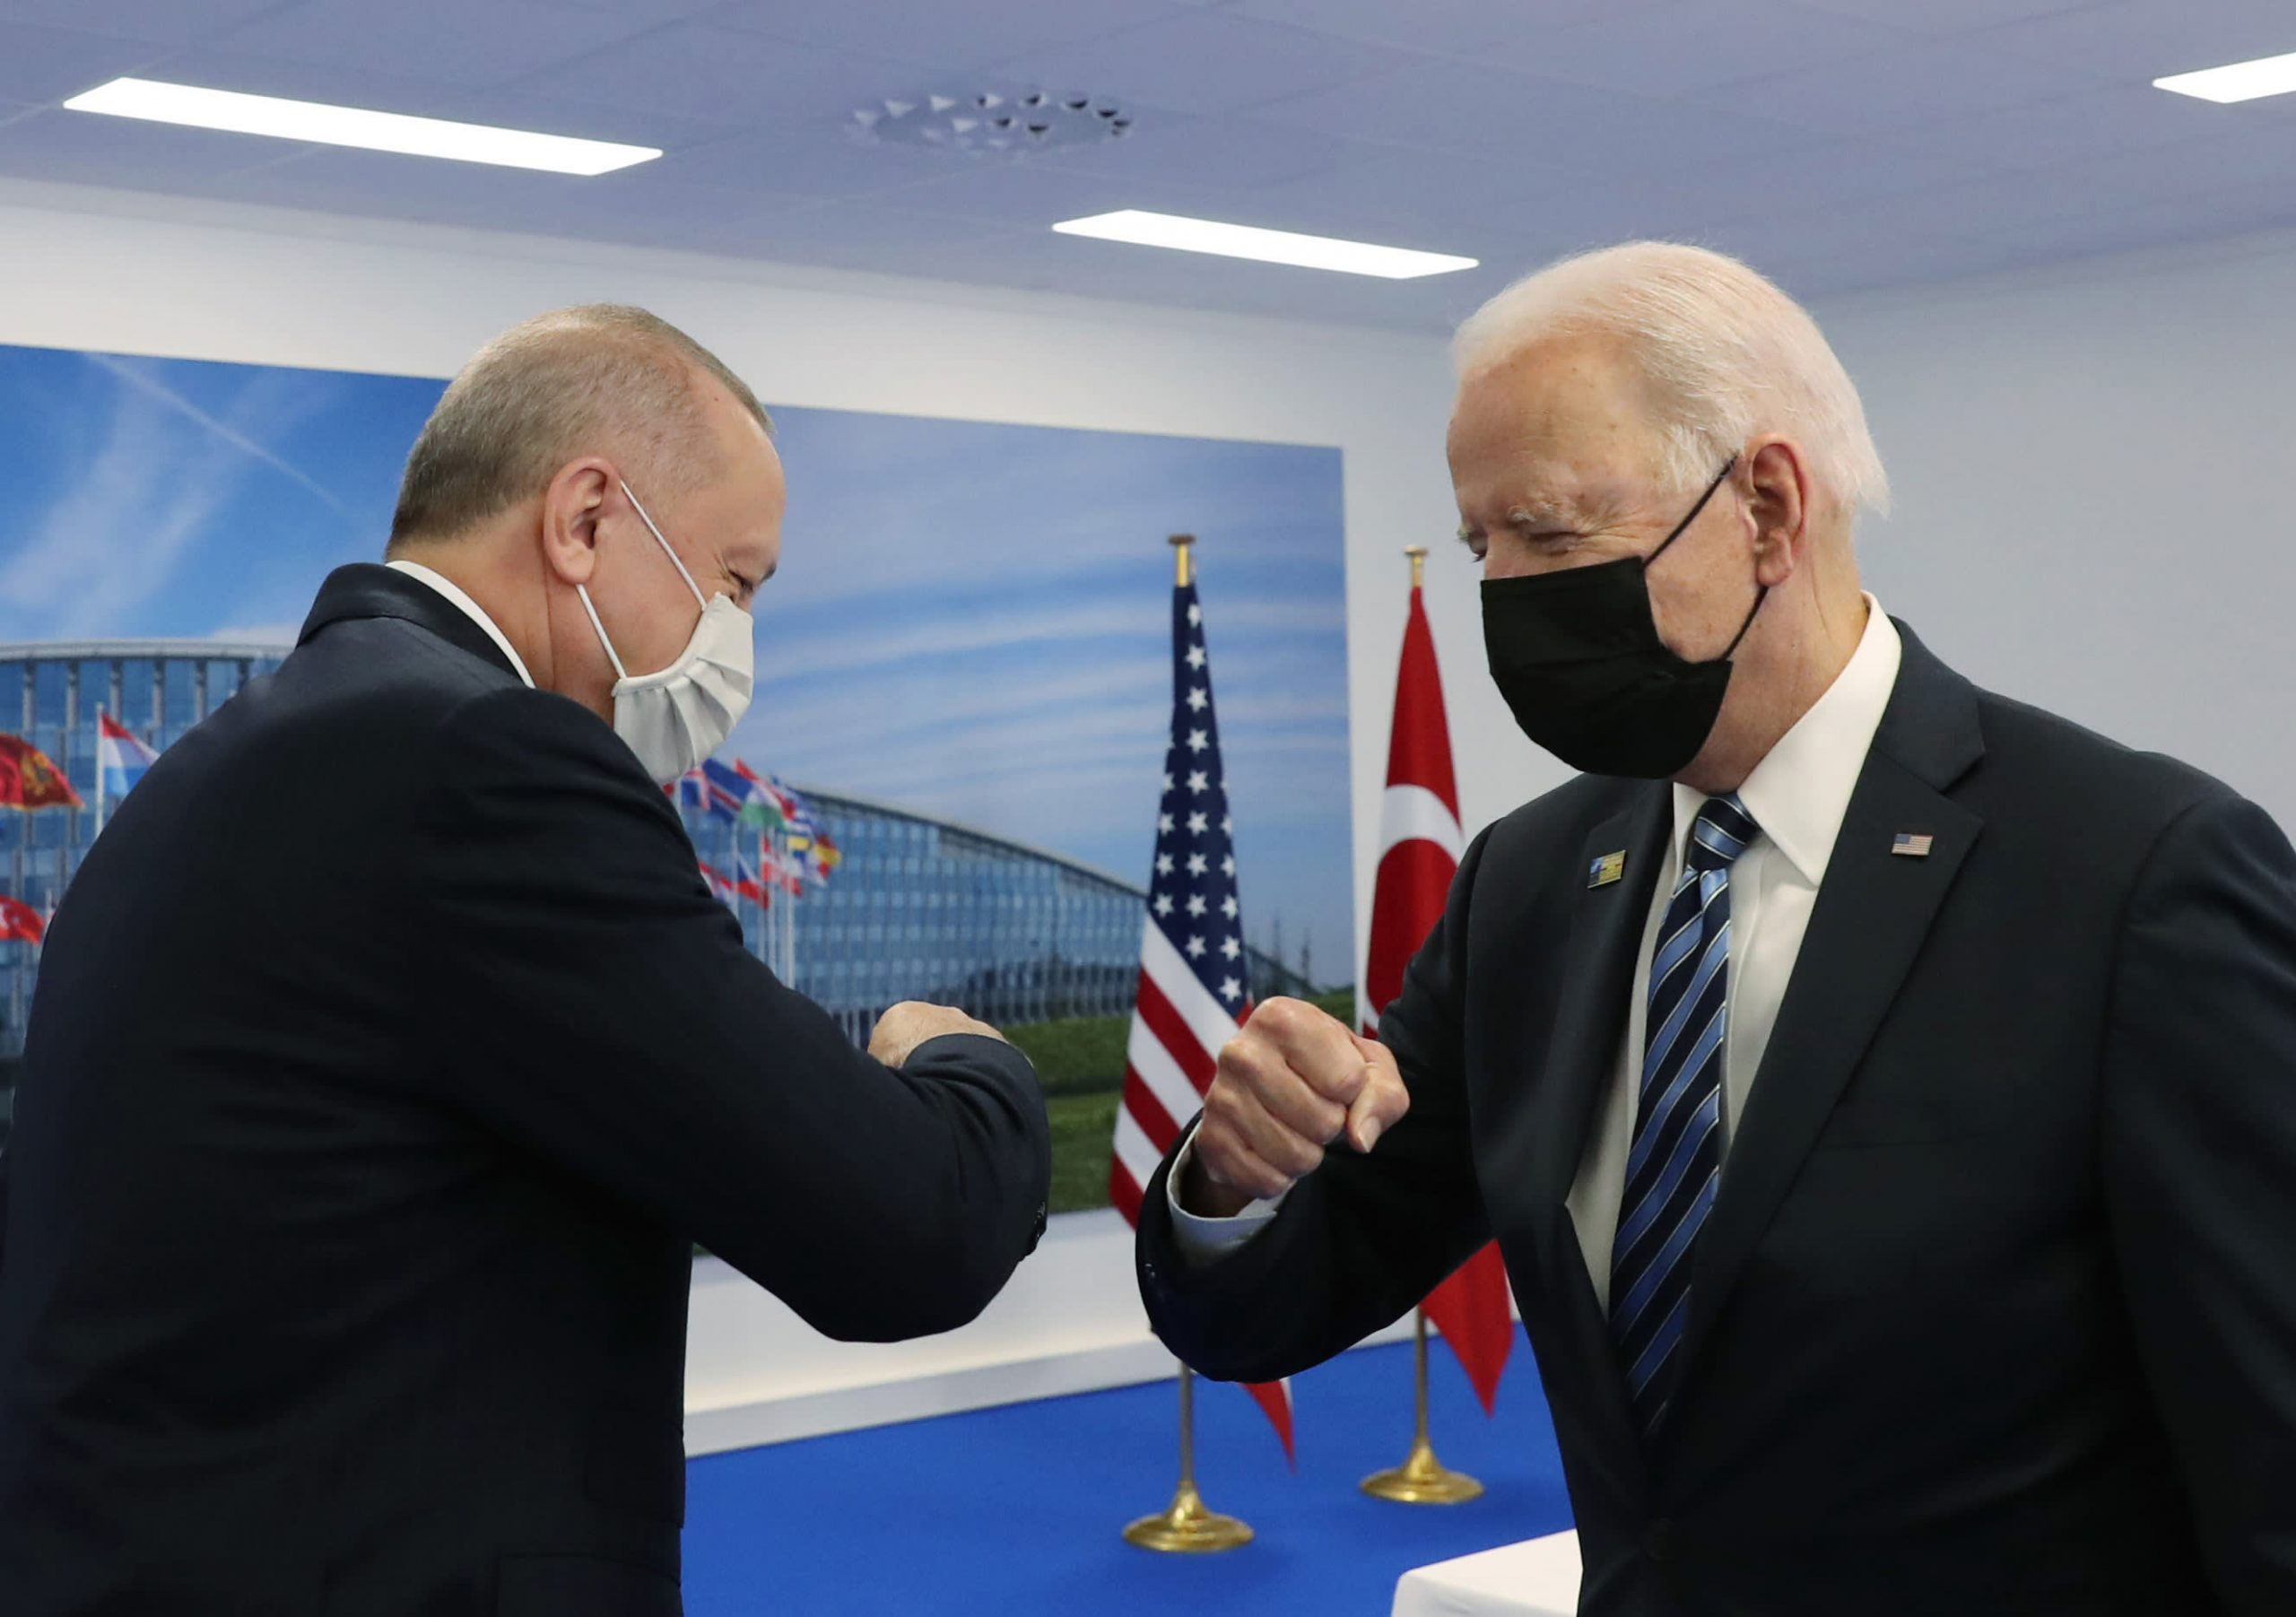 Erdogan sticks to position on Russian missile deal after meeting with Biden